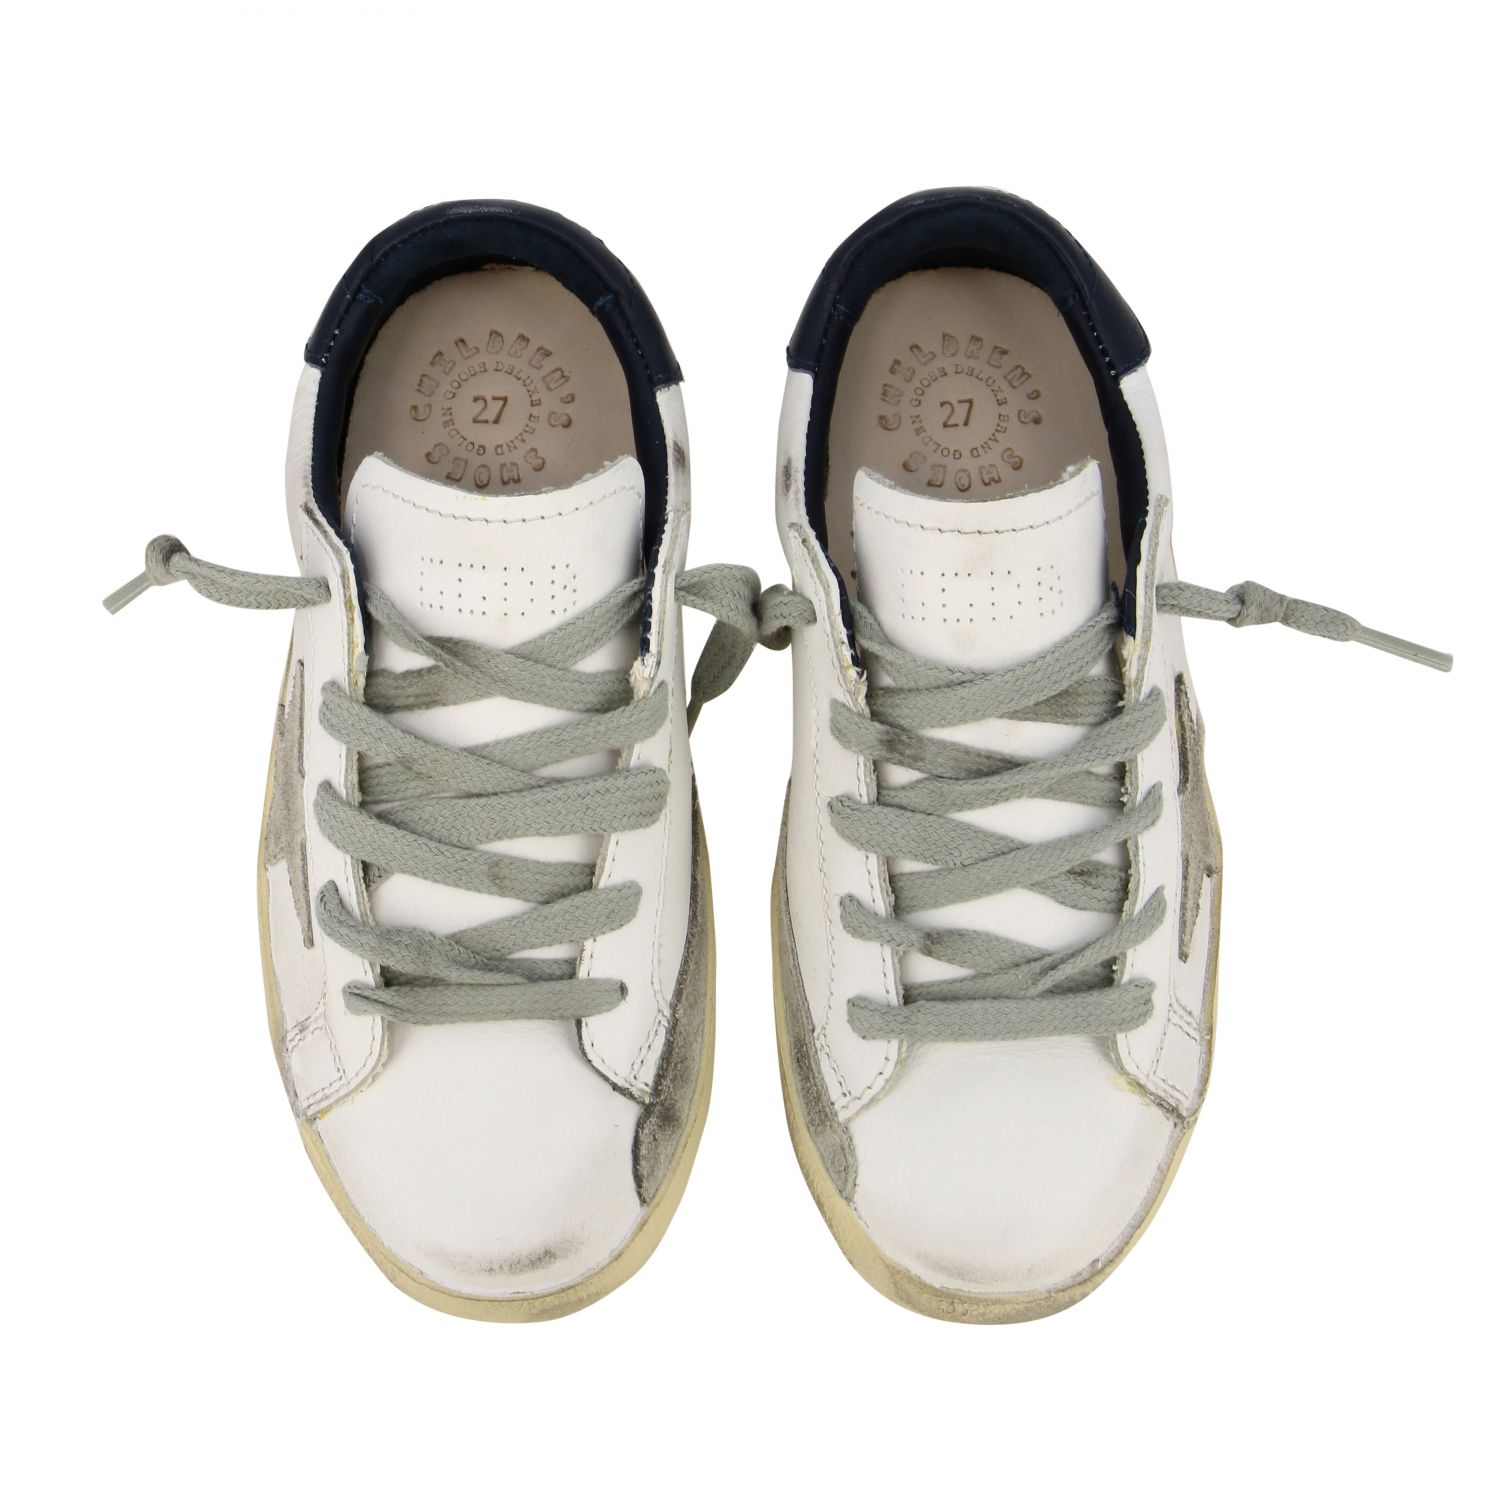 Superstar Golden Goose sneakers in leather and suede with star white 3